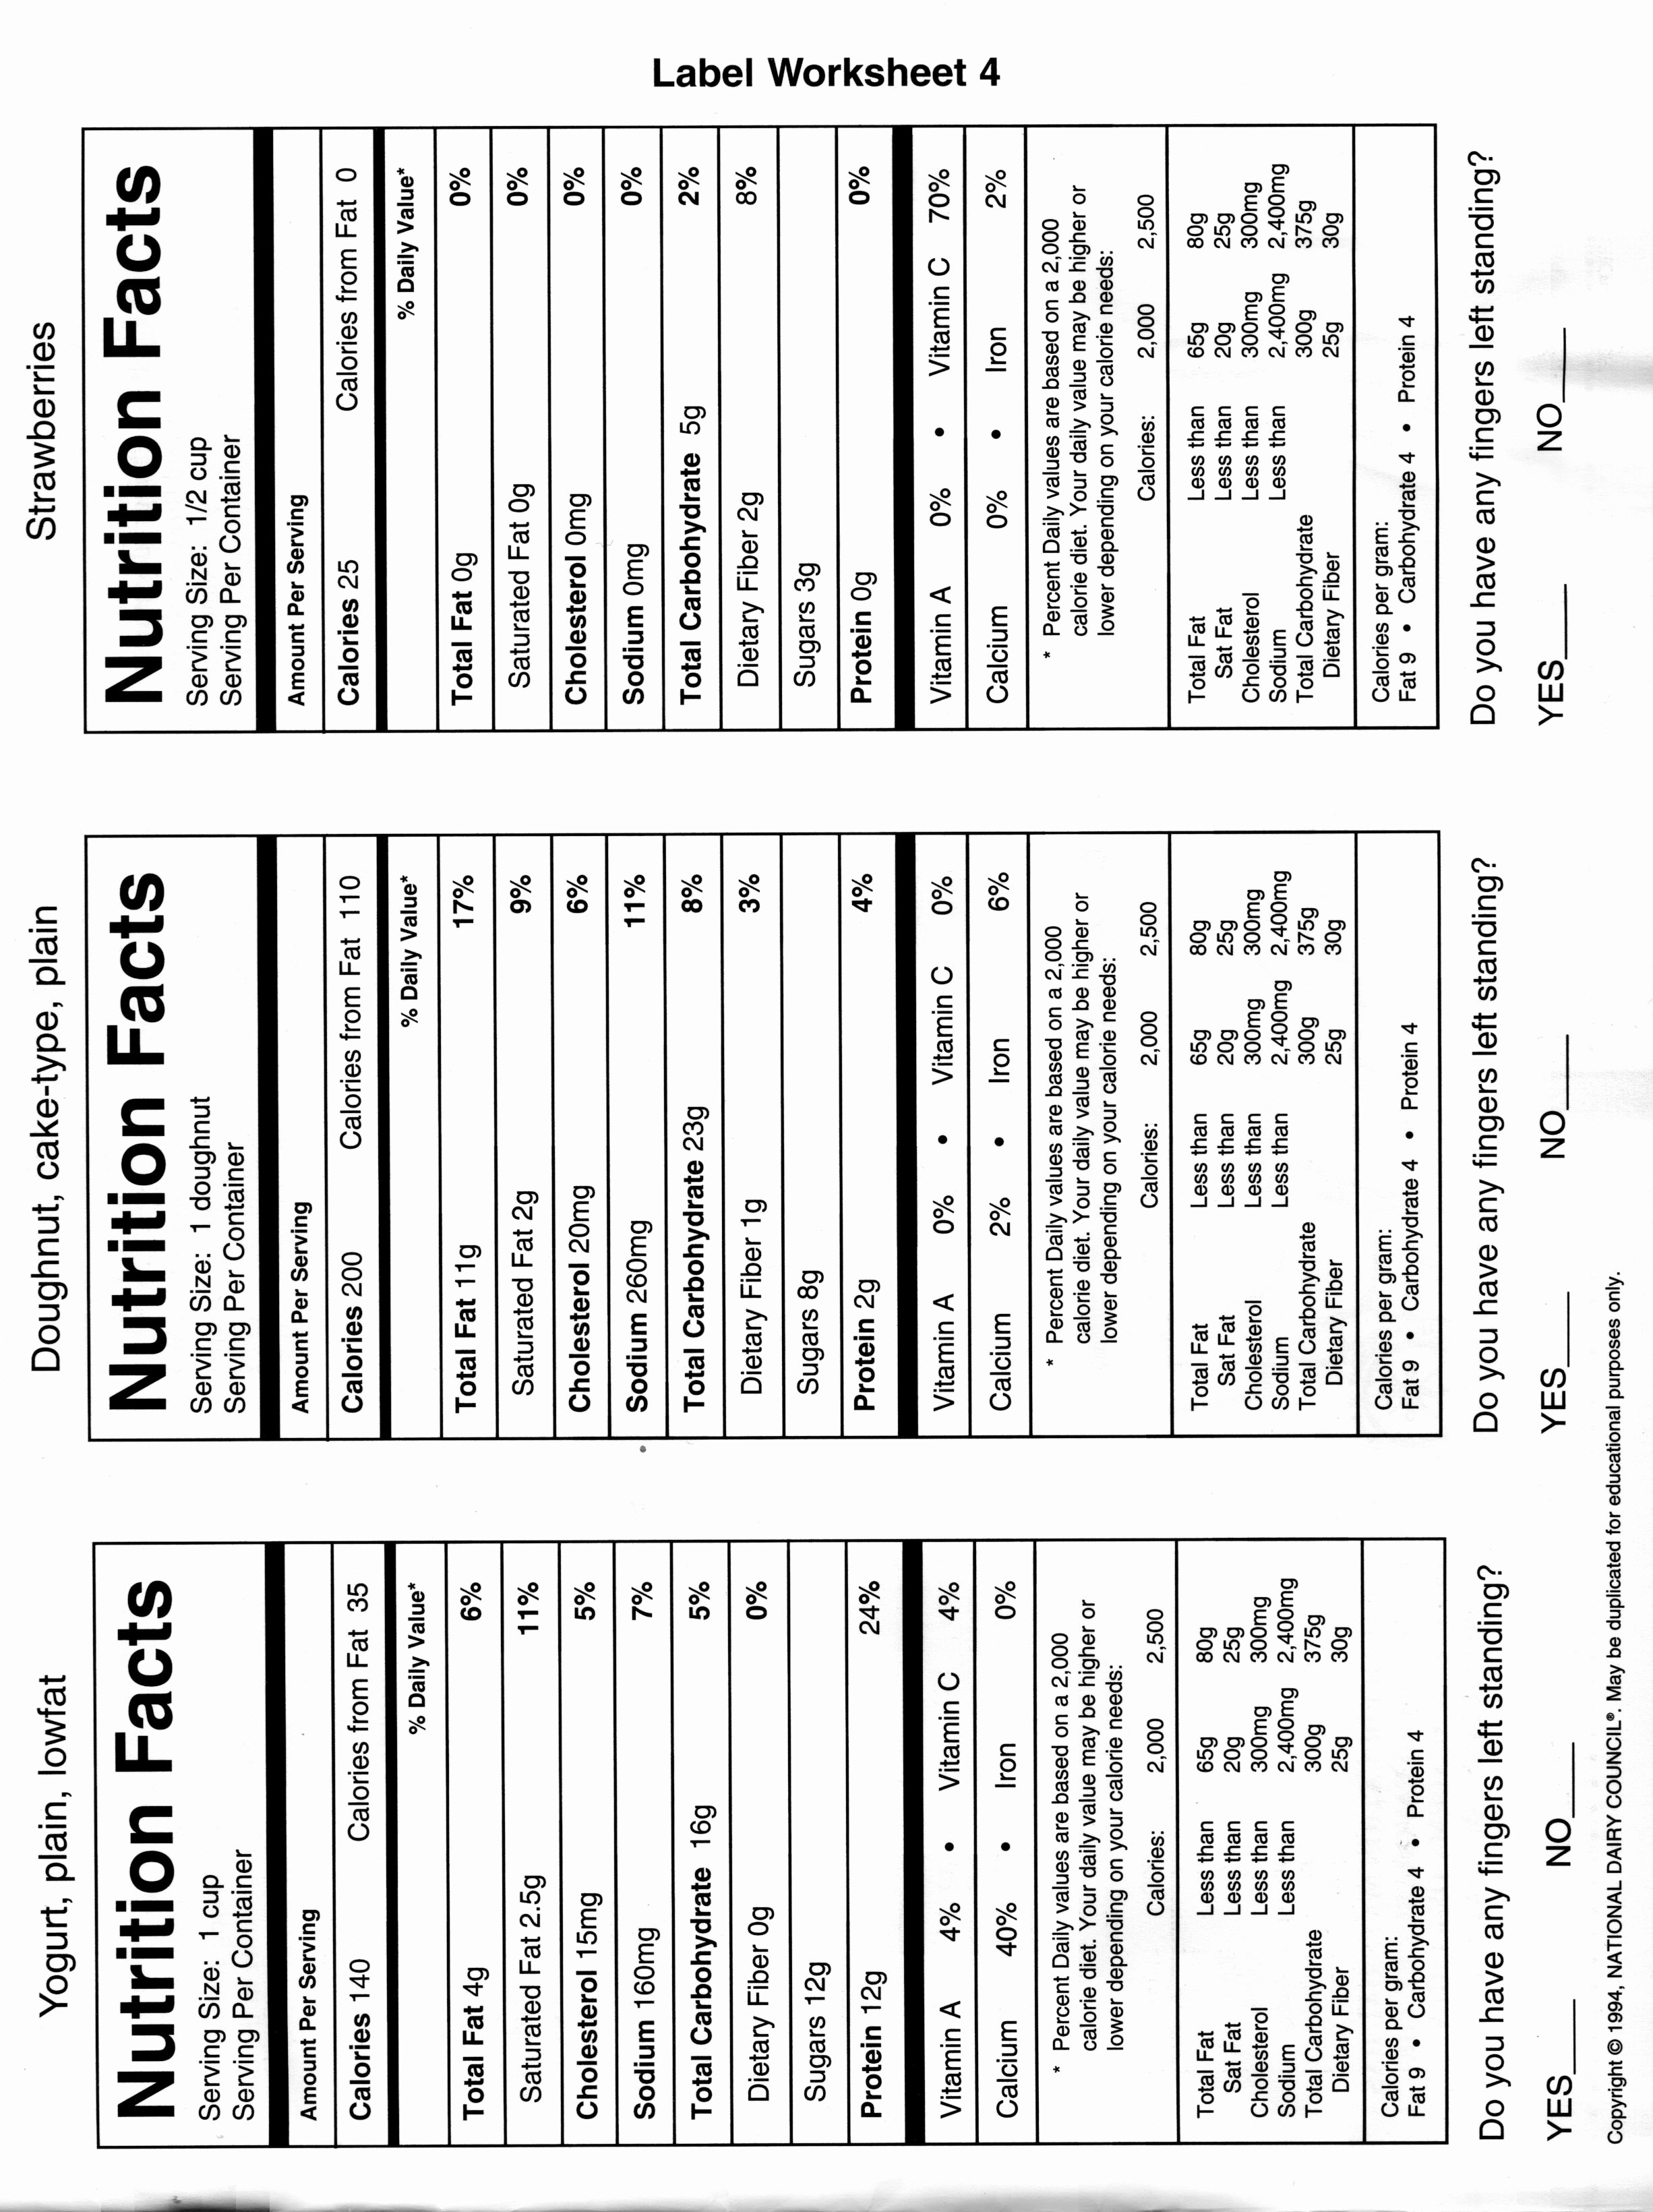 Nutrition Label Worksheet Answer Beautiful 15 Best Of Diet Worksheets In Pdf Blank Nutrition